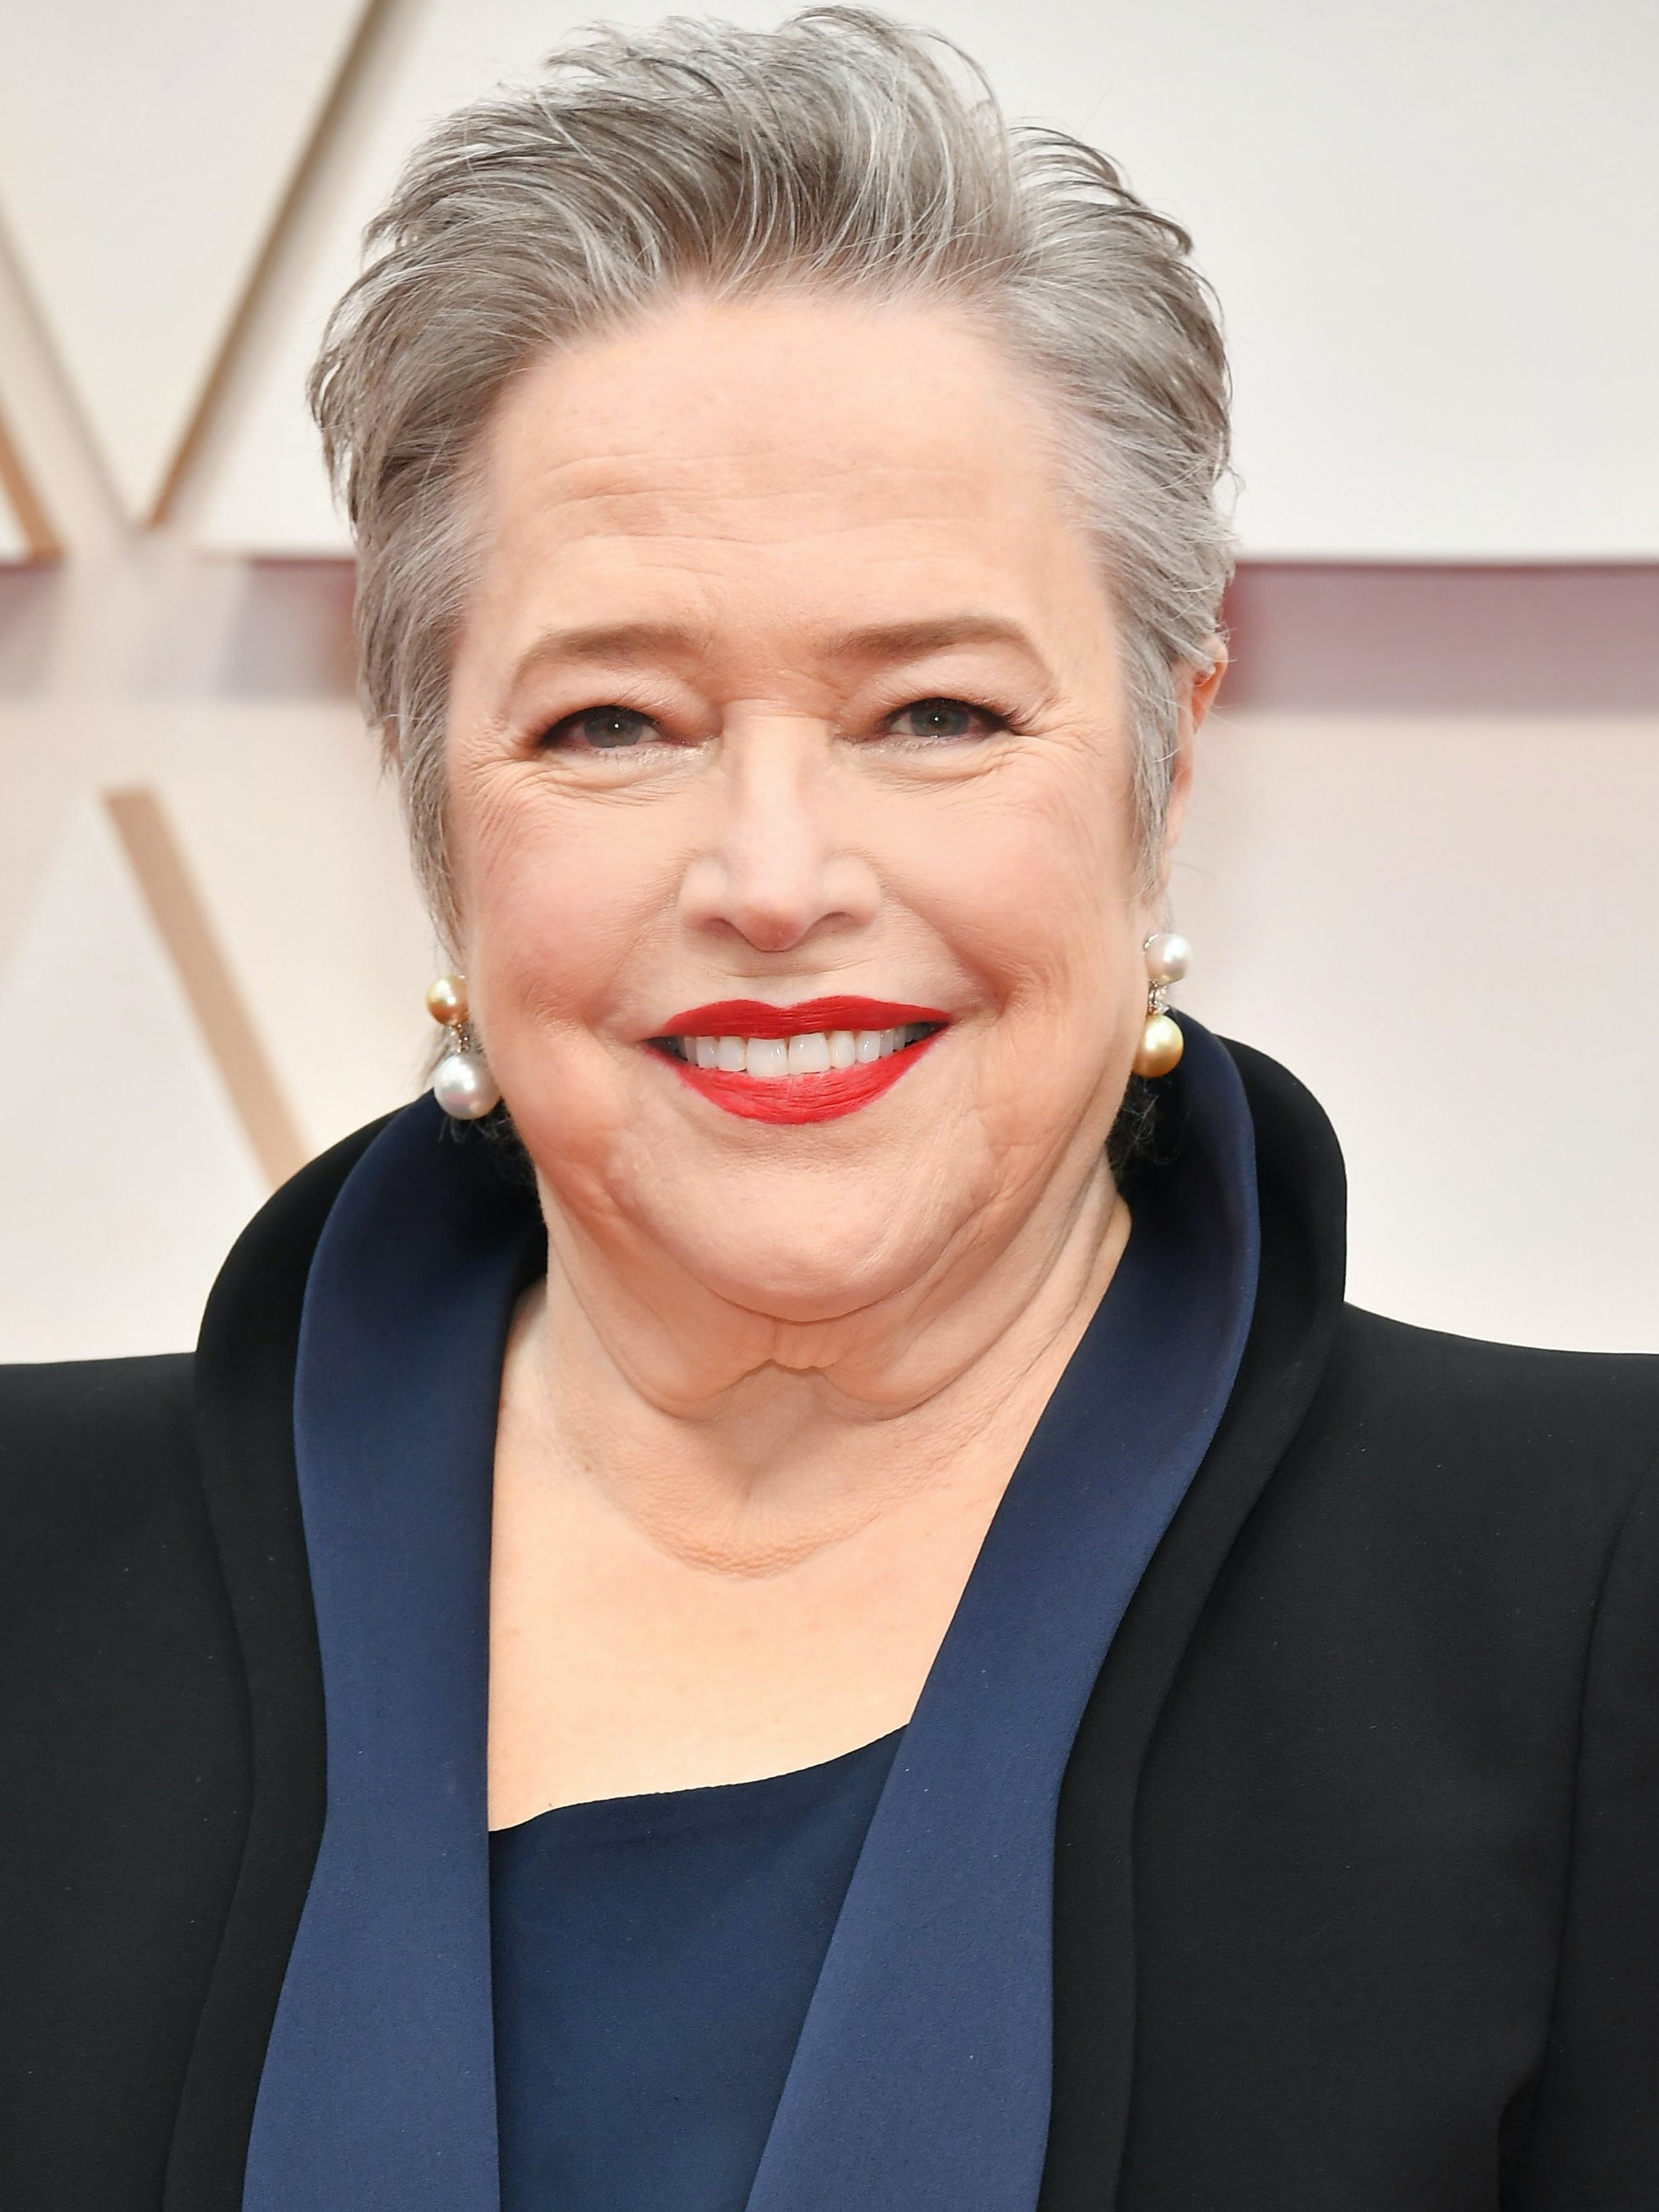 Best looks women over 45 Oscars 2020 - Kathy Bates